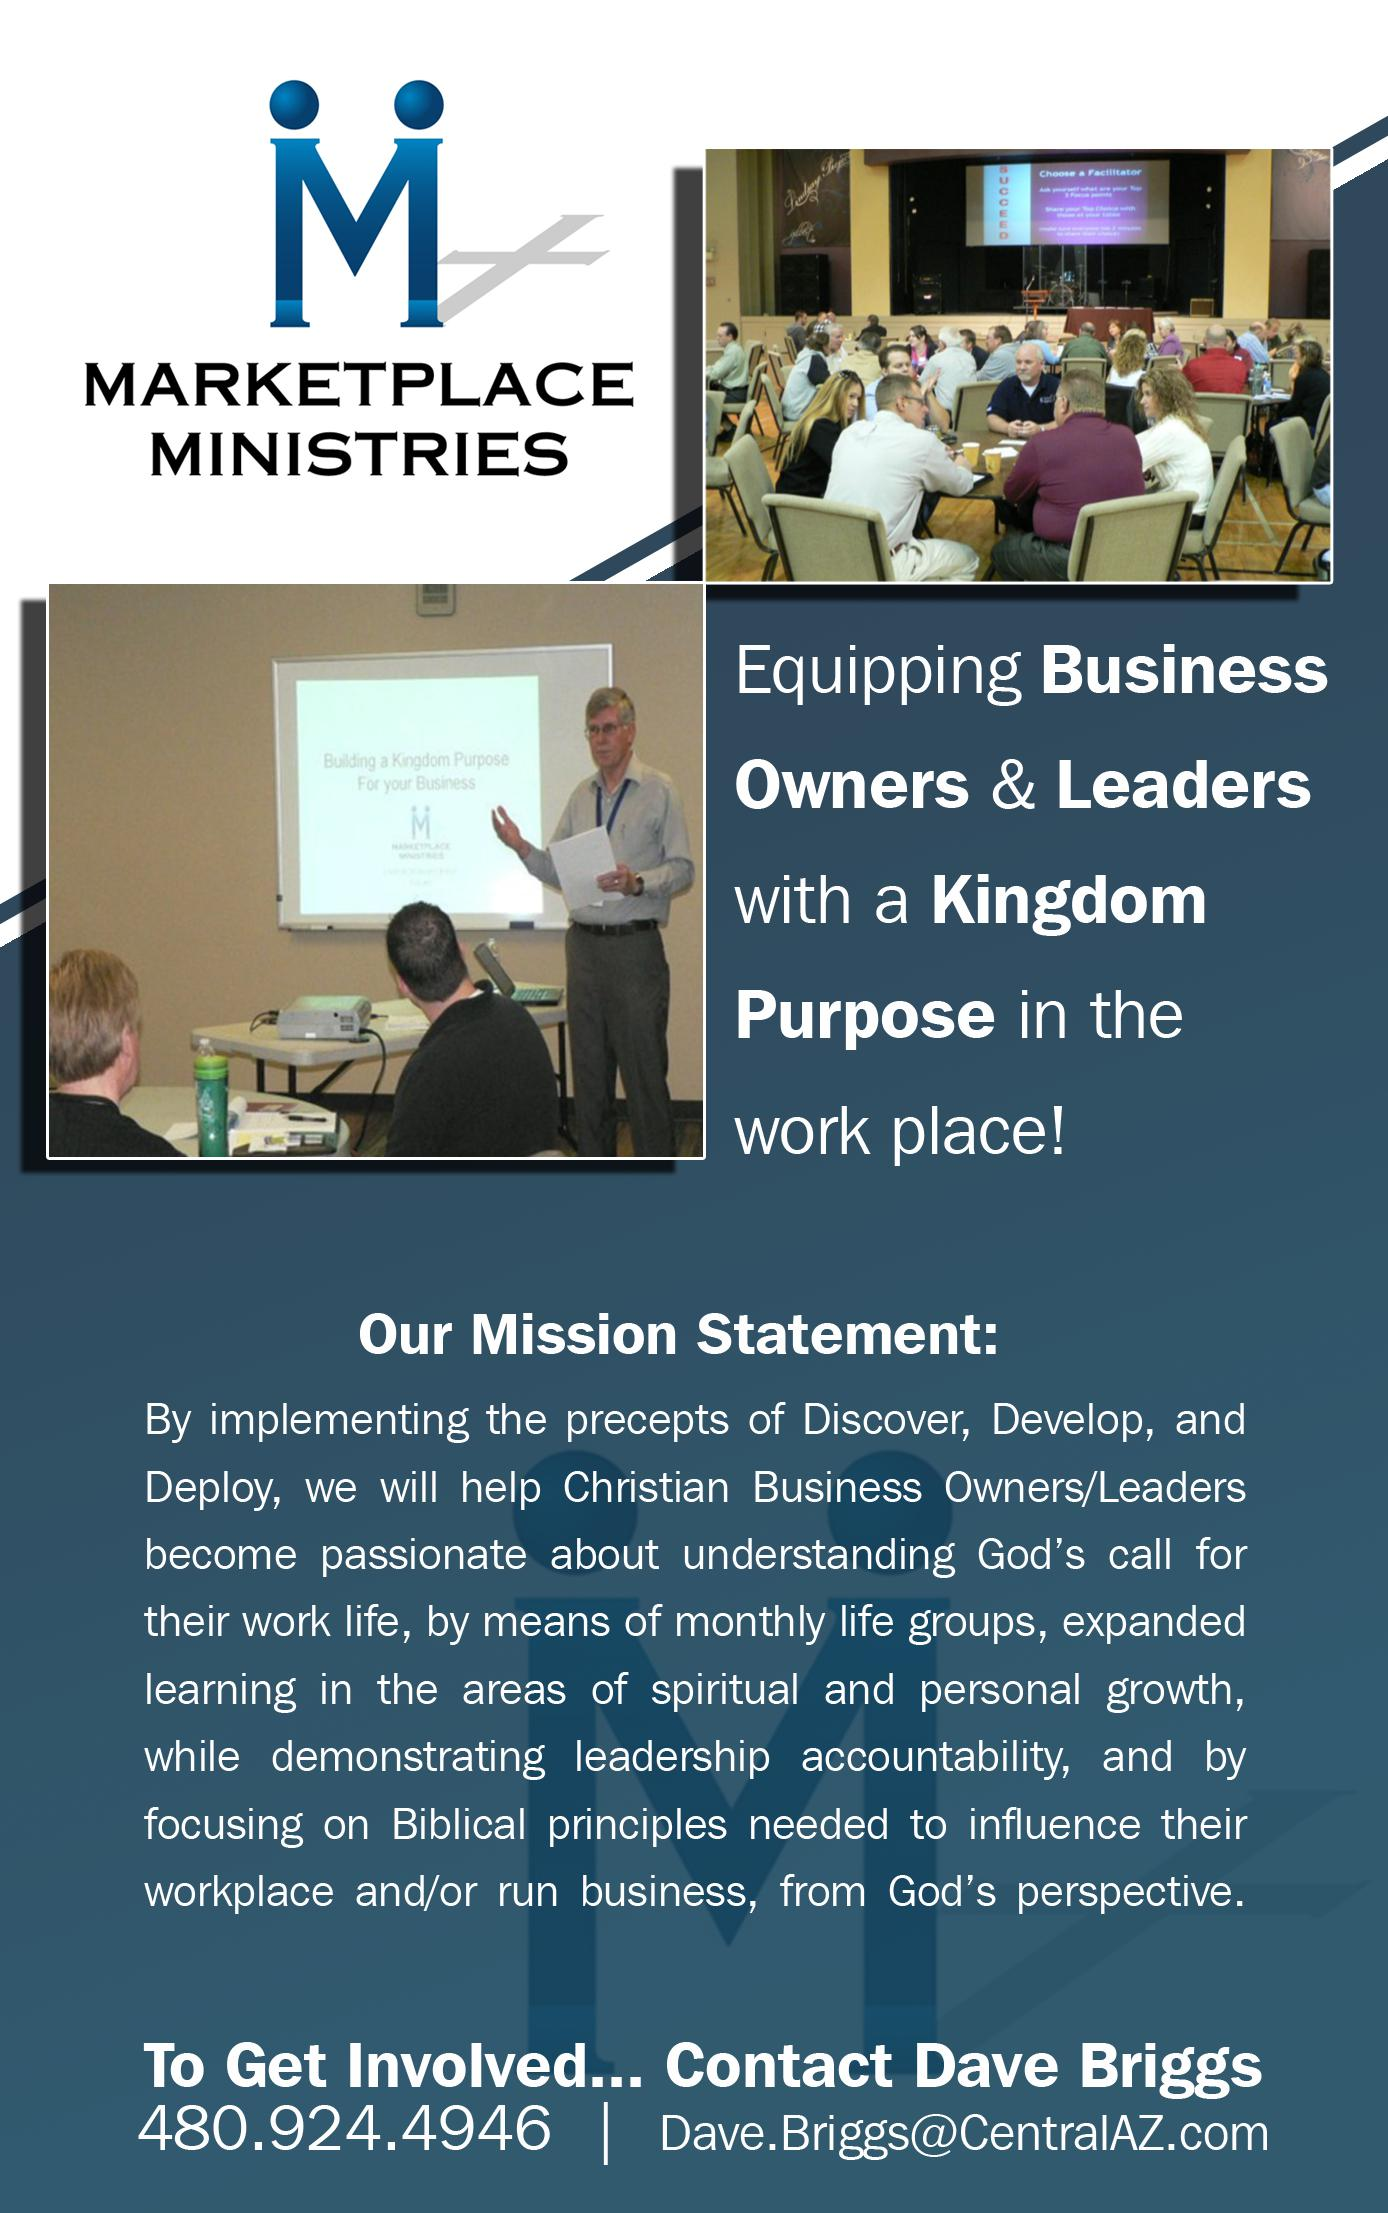 Marketplace Ministries